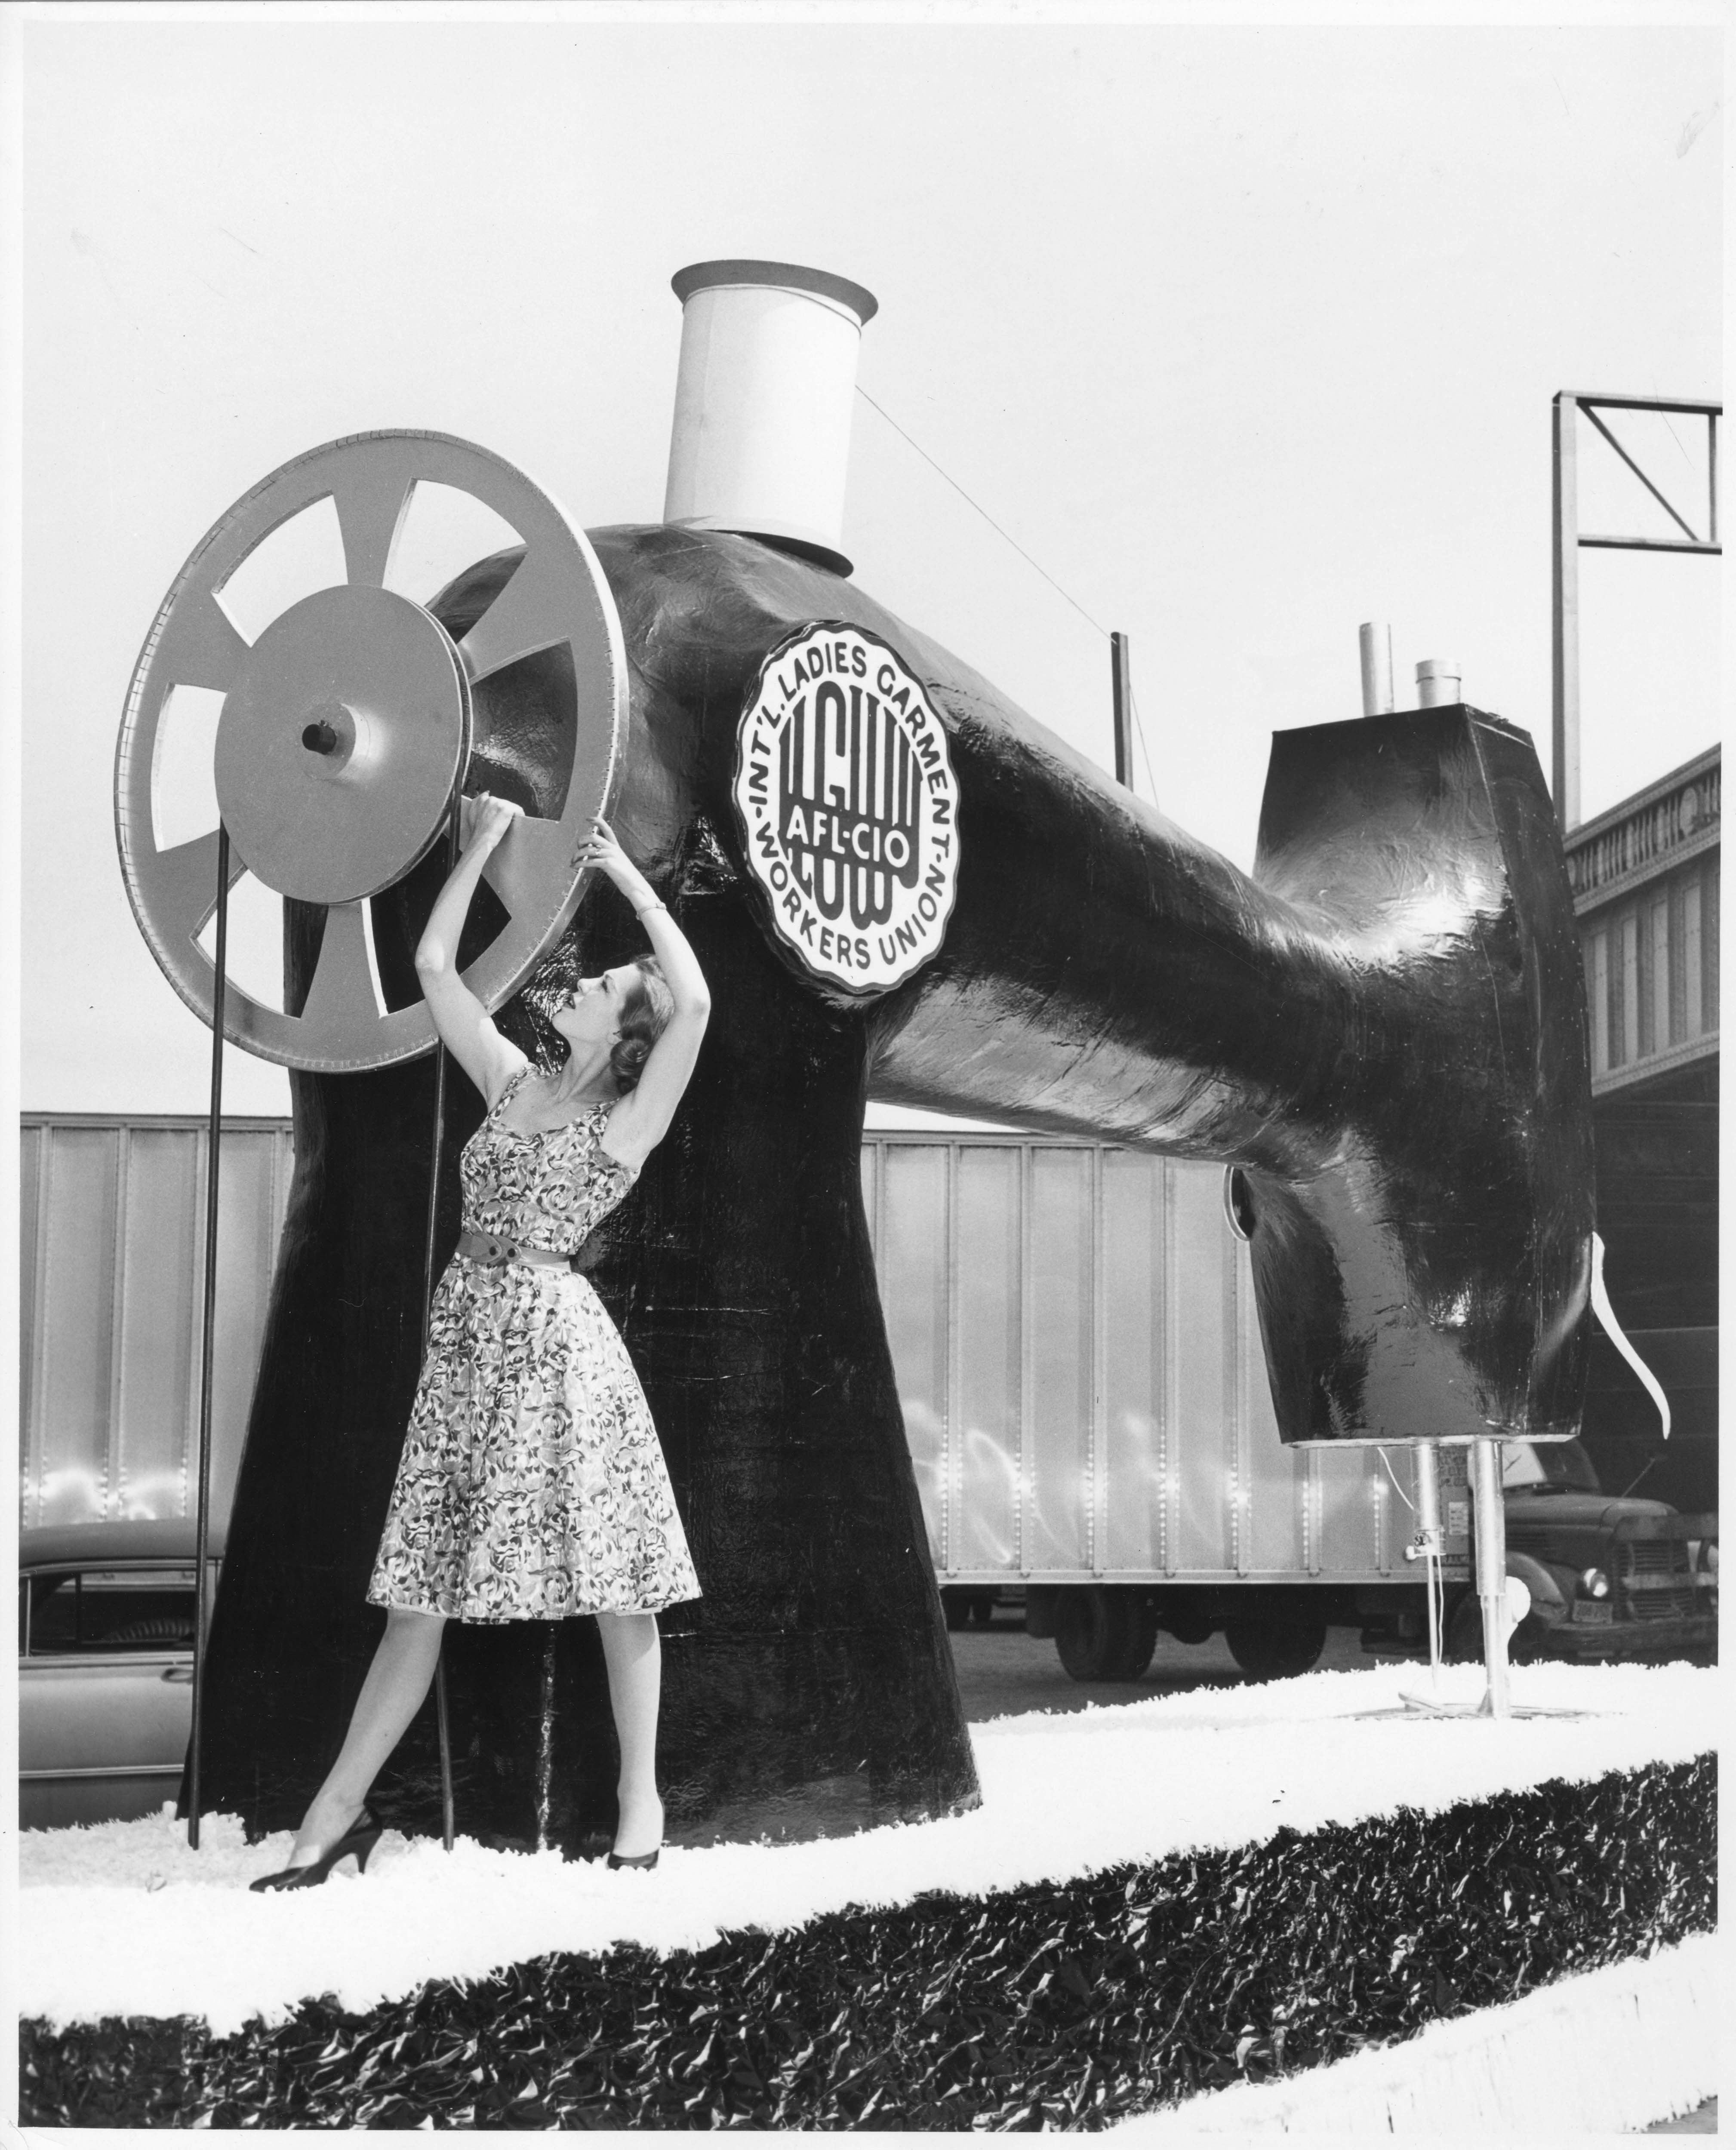 Exhibition: Union Made - Fashioning America in the 20th Century